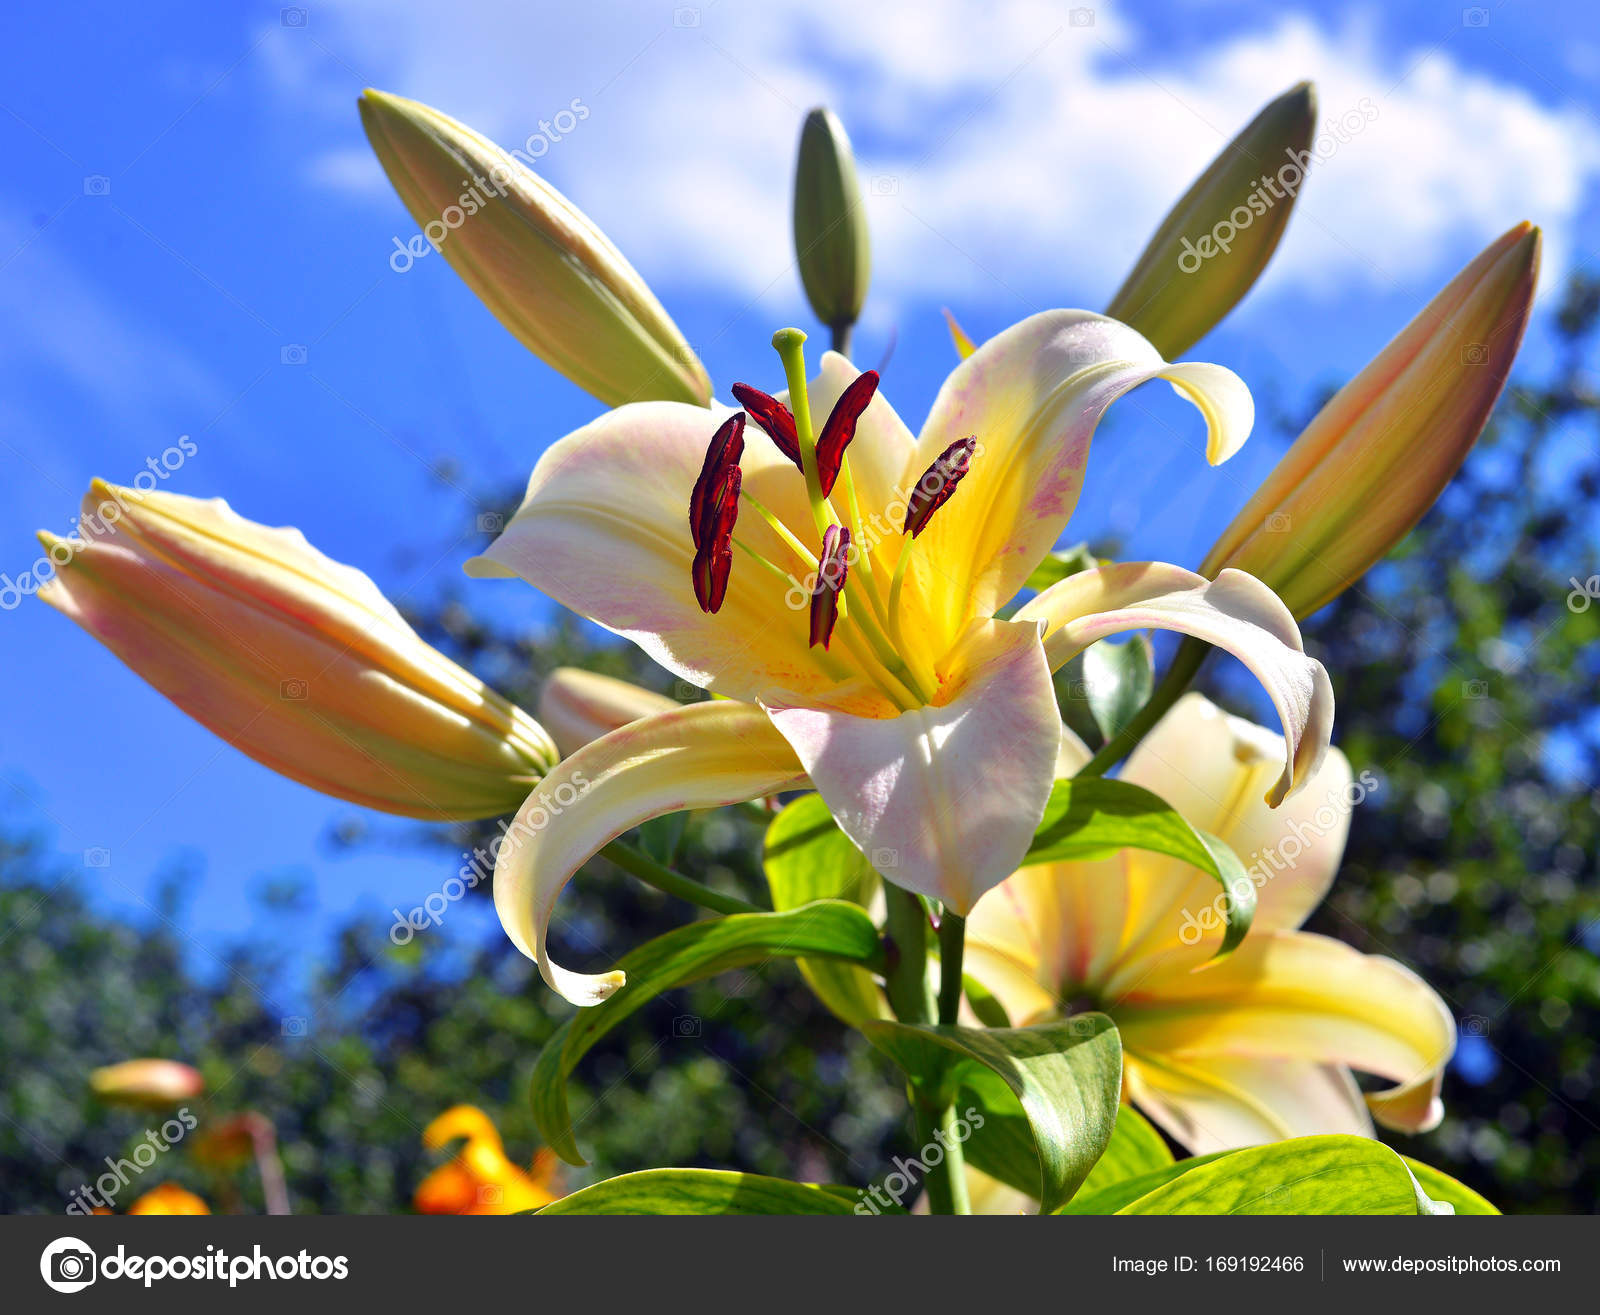 Beautiful flowers of lilies in a garden against a blue sky backg beautiful flowers of lilies in a garden against a blue sky backg stock photo izmirmasajfo